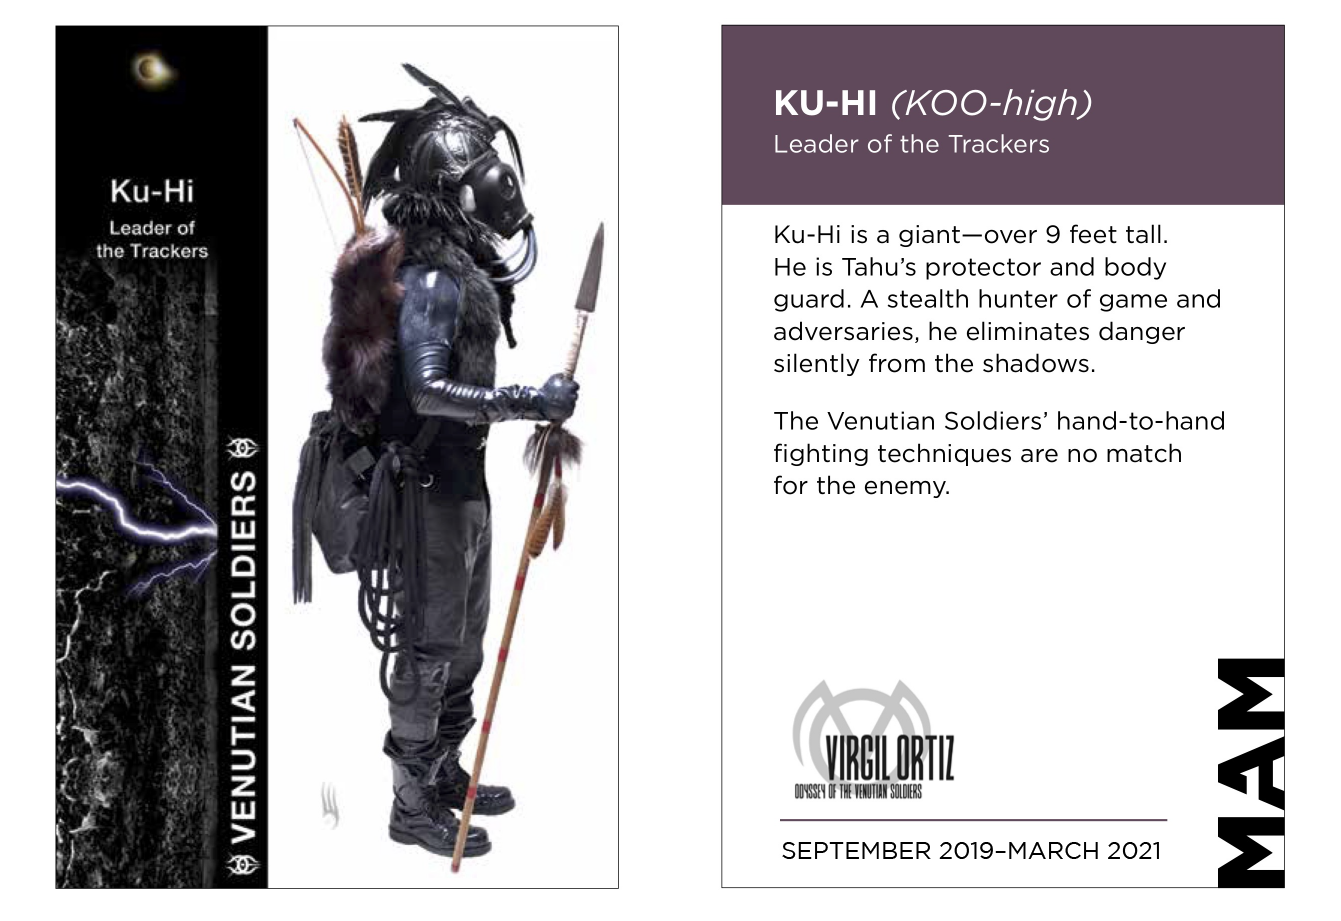 an information card about one of Virgil Ortiz's Venutian Soldiers.